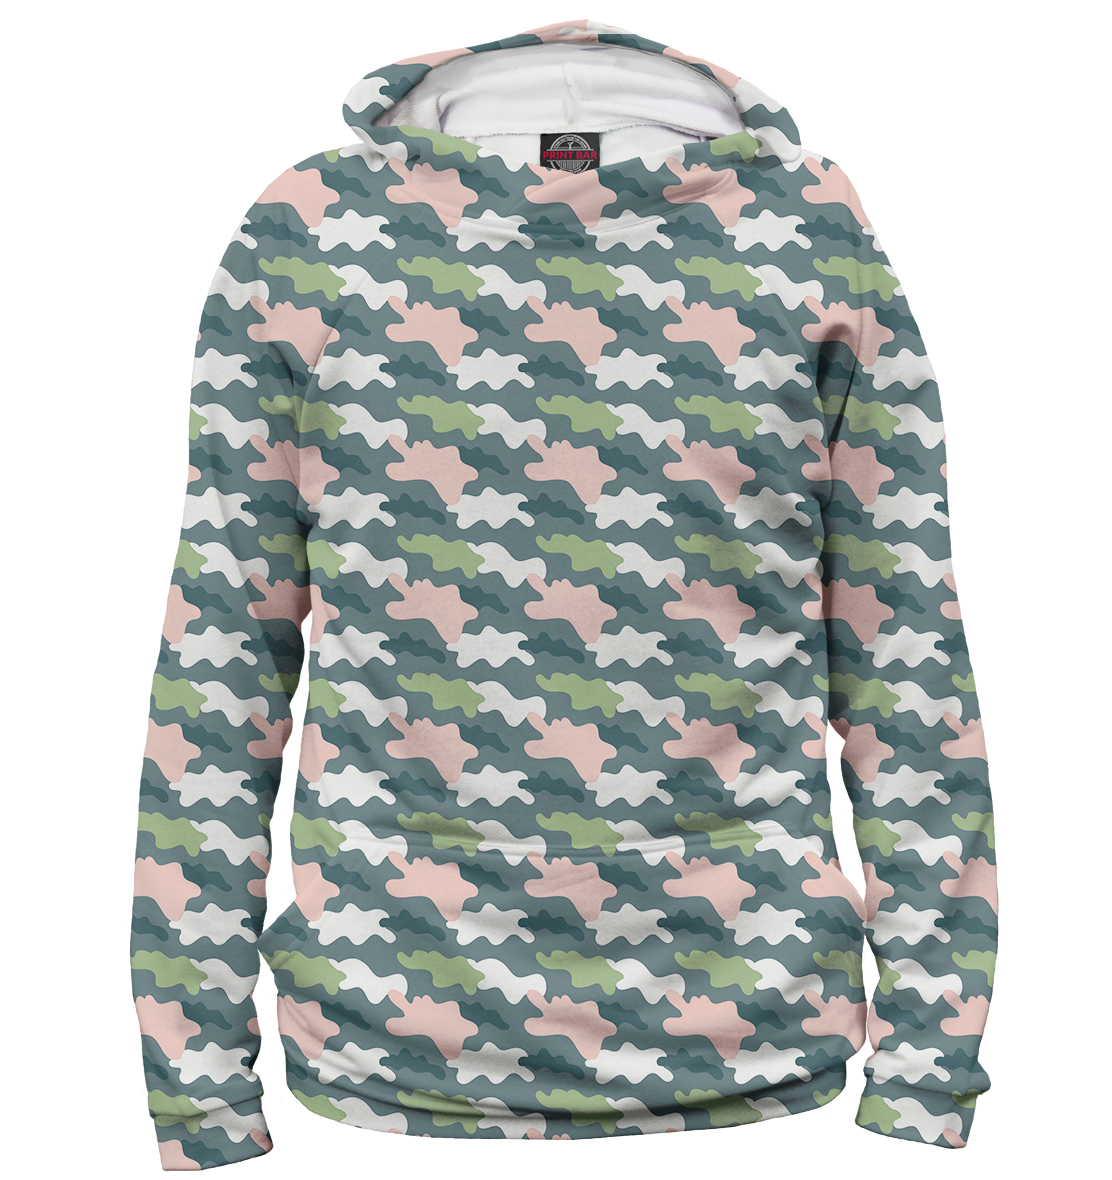 Gray-Green-Pink Camouflage